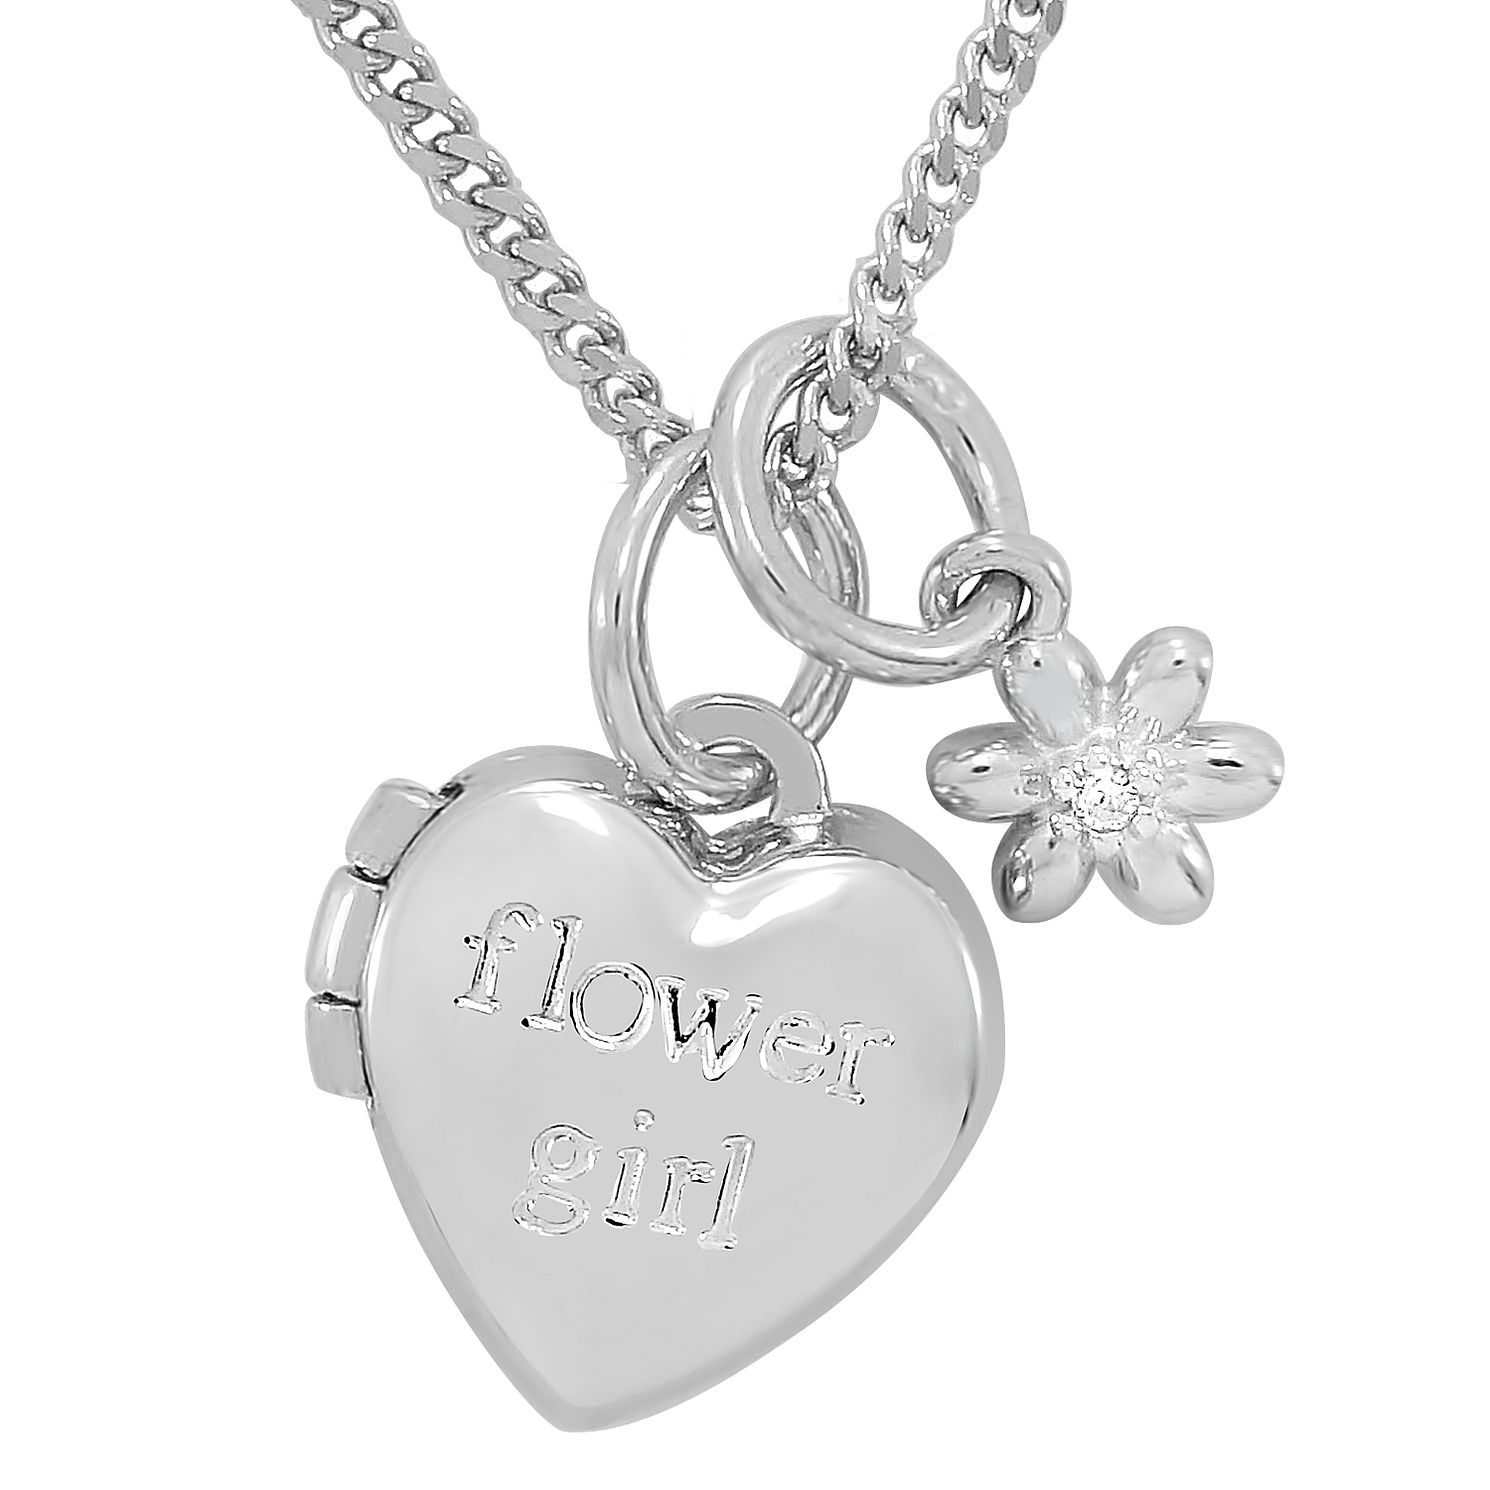 Diamond Wishes Sterling Silver Qxflower Girl' Heart Locket - Product number 5220963